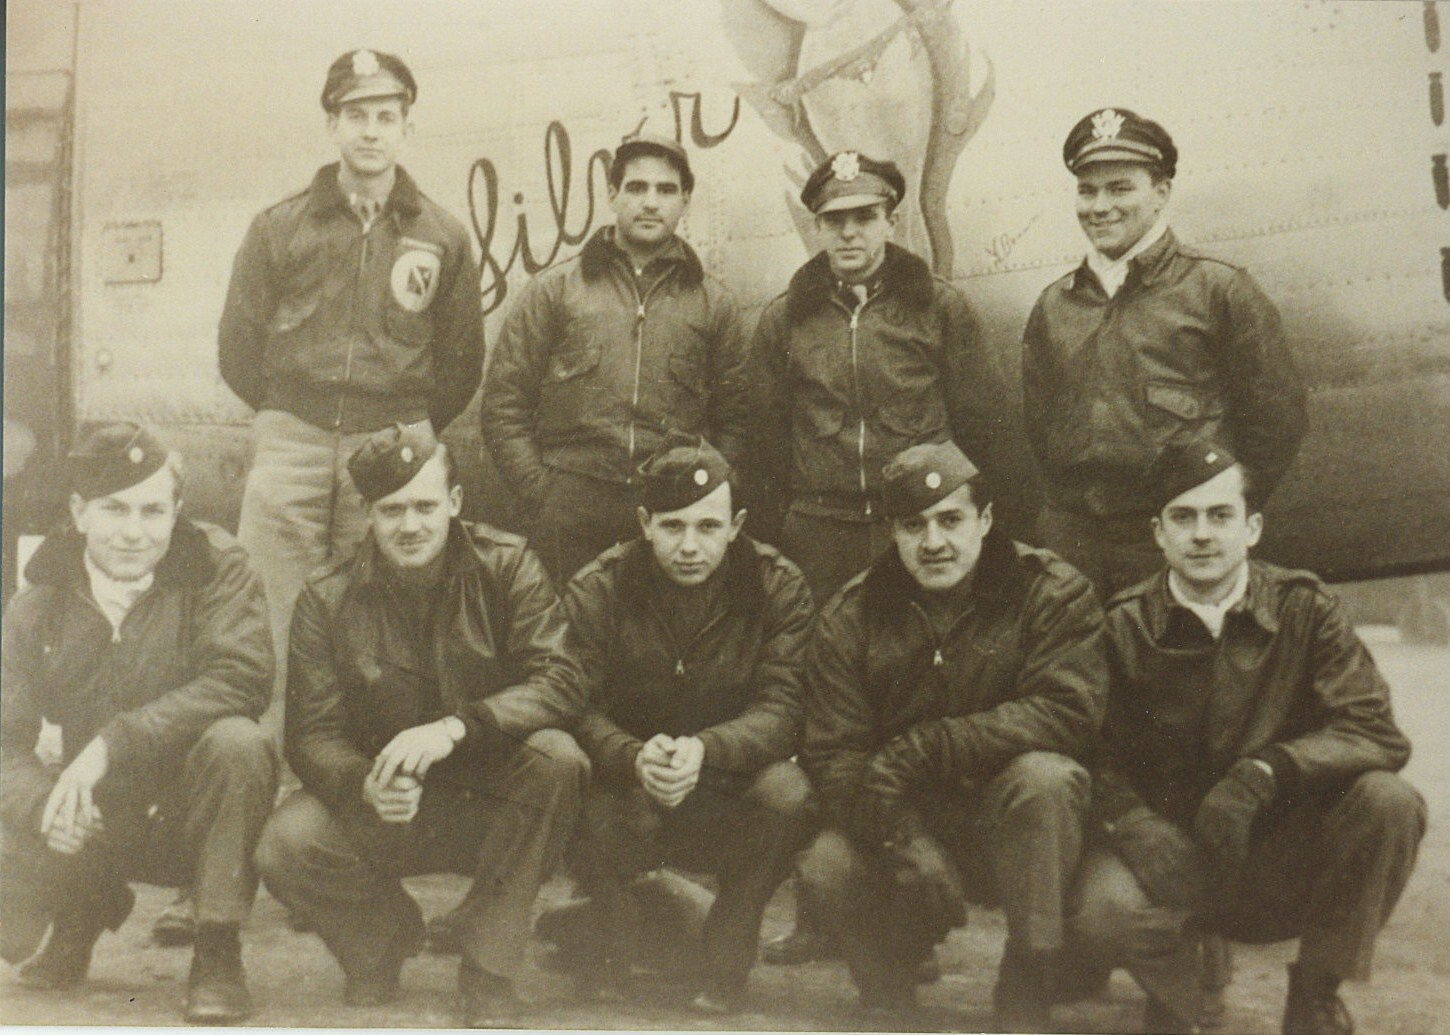 The Crew Of 415th Bomb Squadron 98th Group Bottom Row From Left To Right John Norris